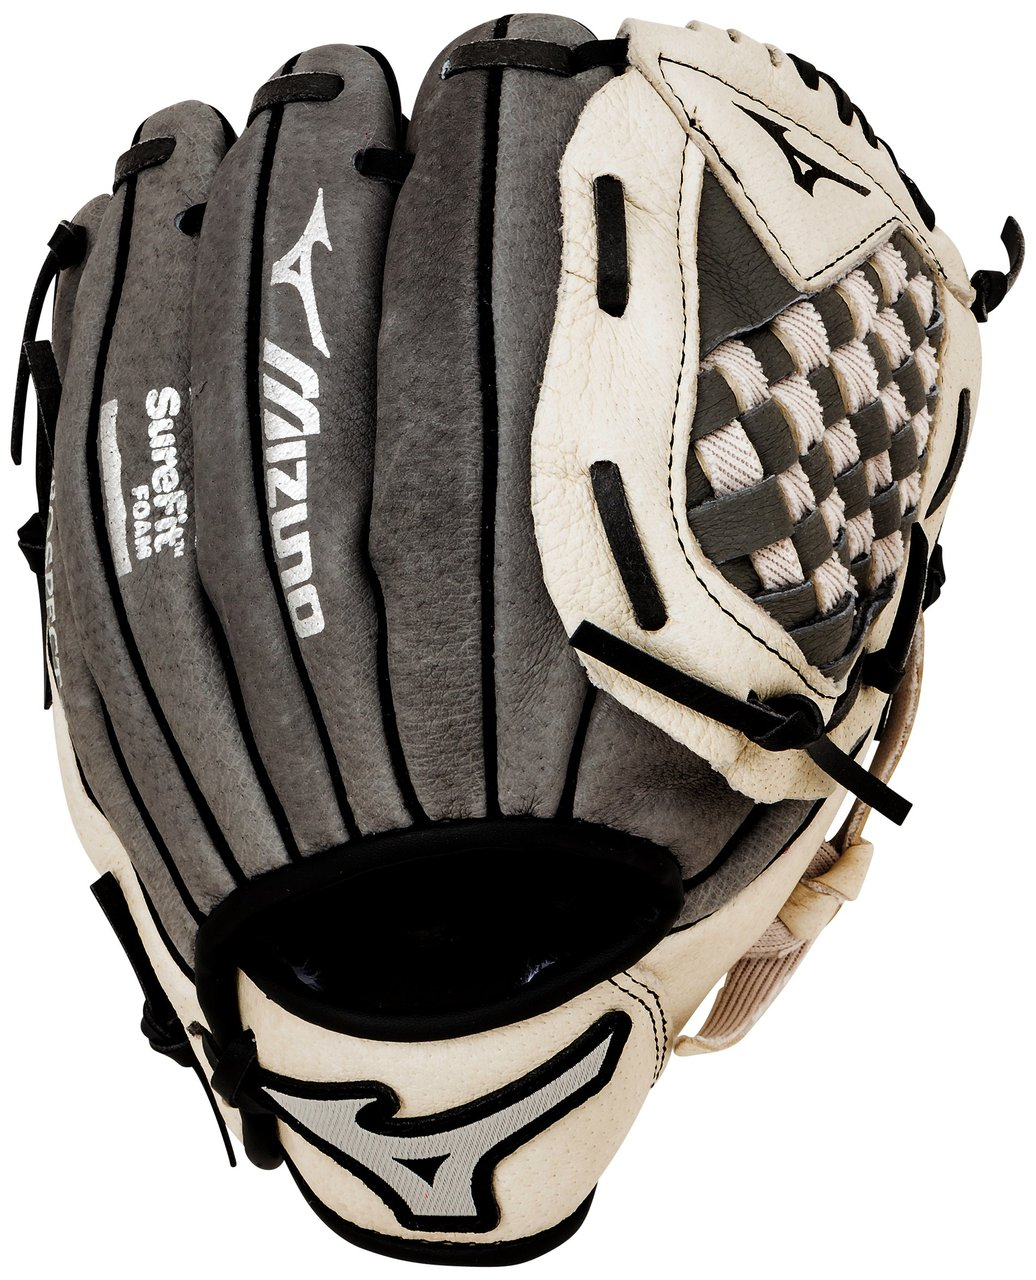 mizuno-prospect-gpp900y1gy-grey-9-inch-youth-baseball-glove-left-handed-throw GPP900Y1GY-Left Handed Throw Mizuno 041969127926 Mizuno Prospect Series Youth Gloves. Patented Power Close makes catching easy.